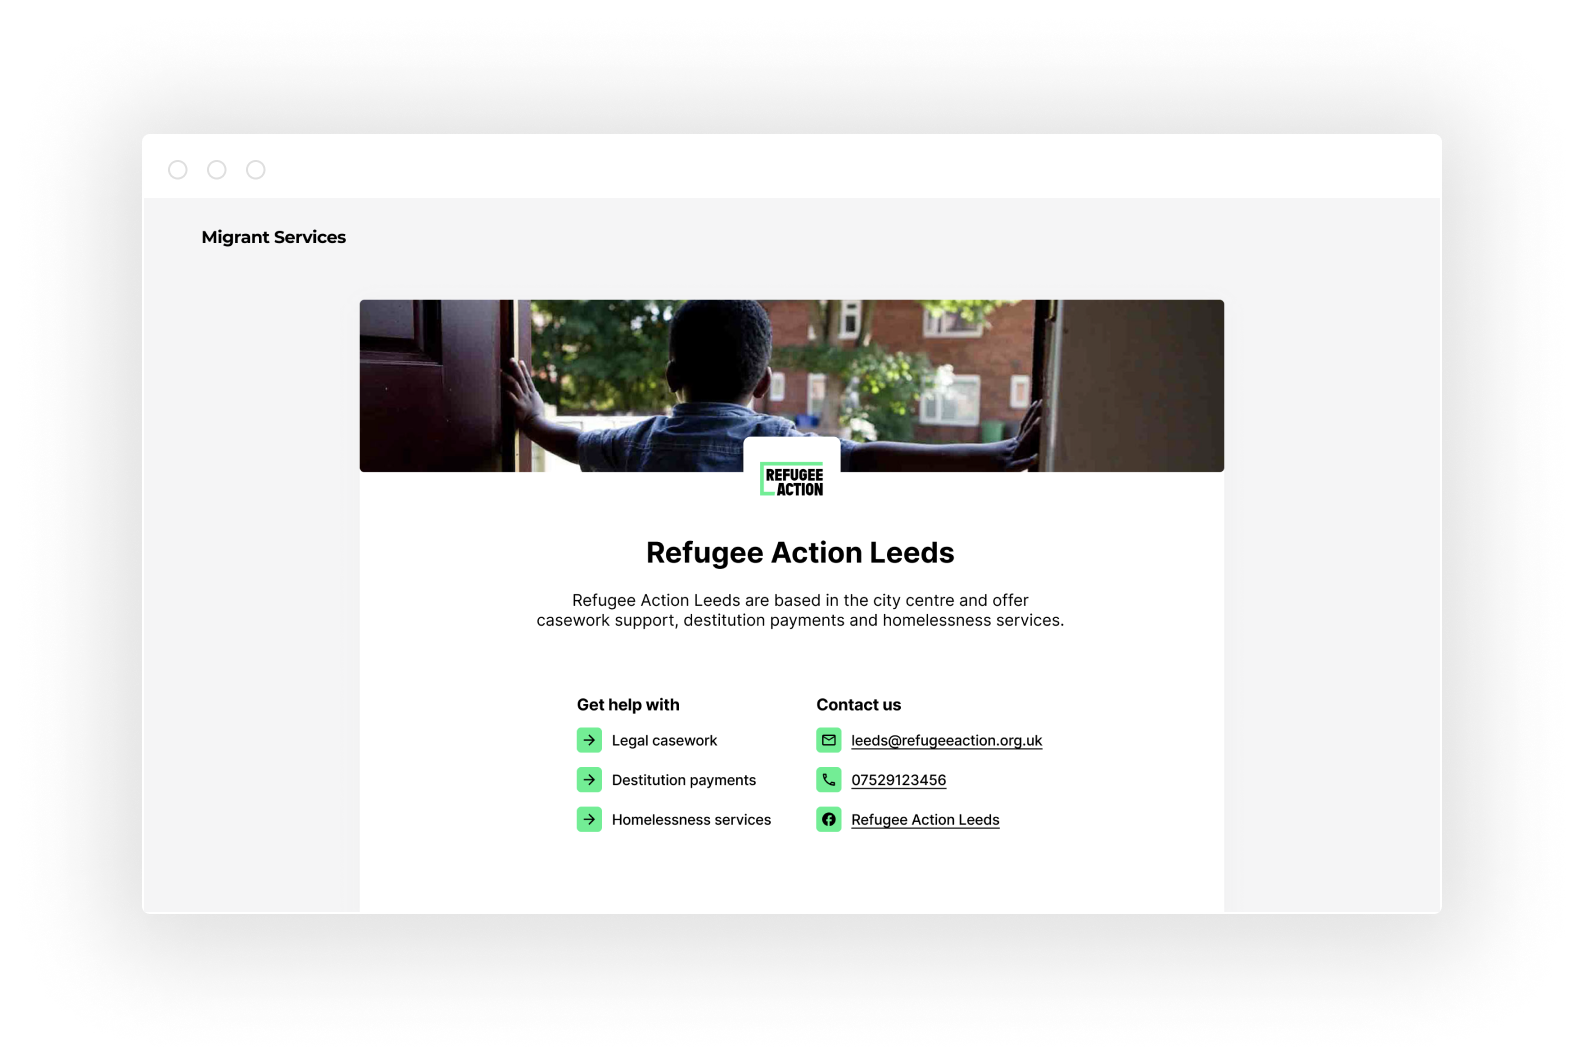 A screenshot of Refugee Action Leeds' Migrant Services homepage